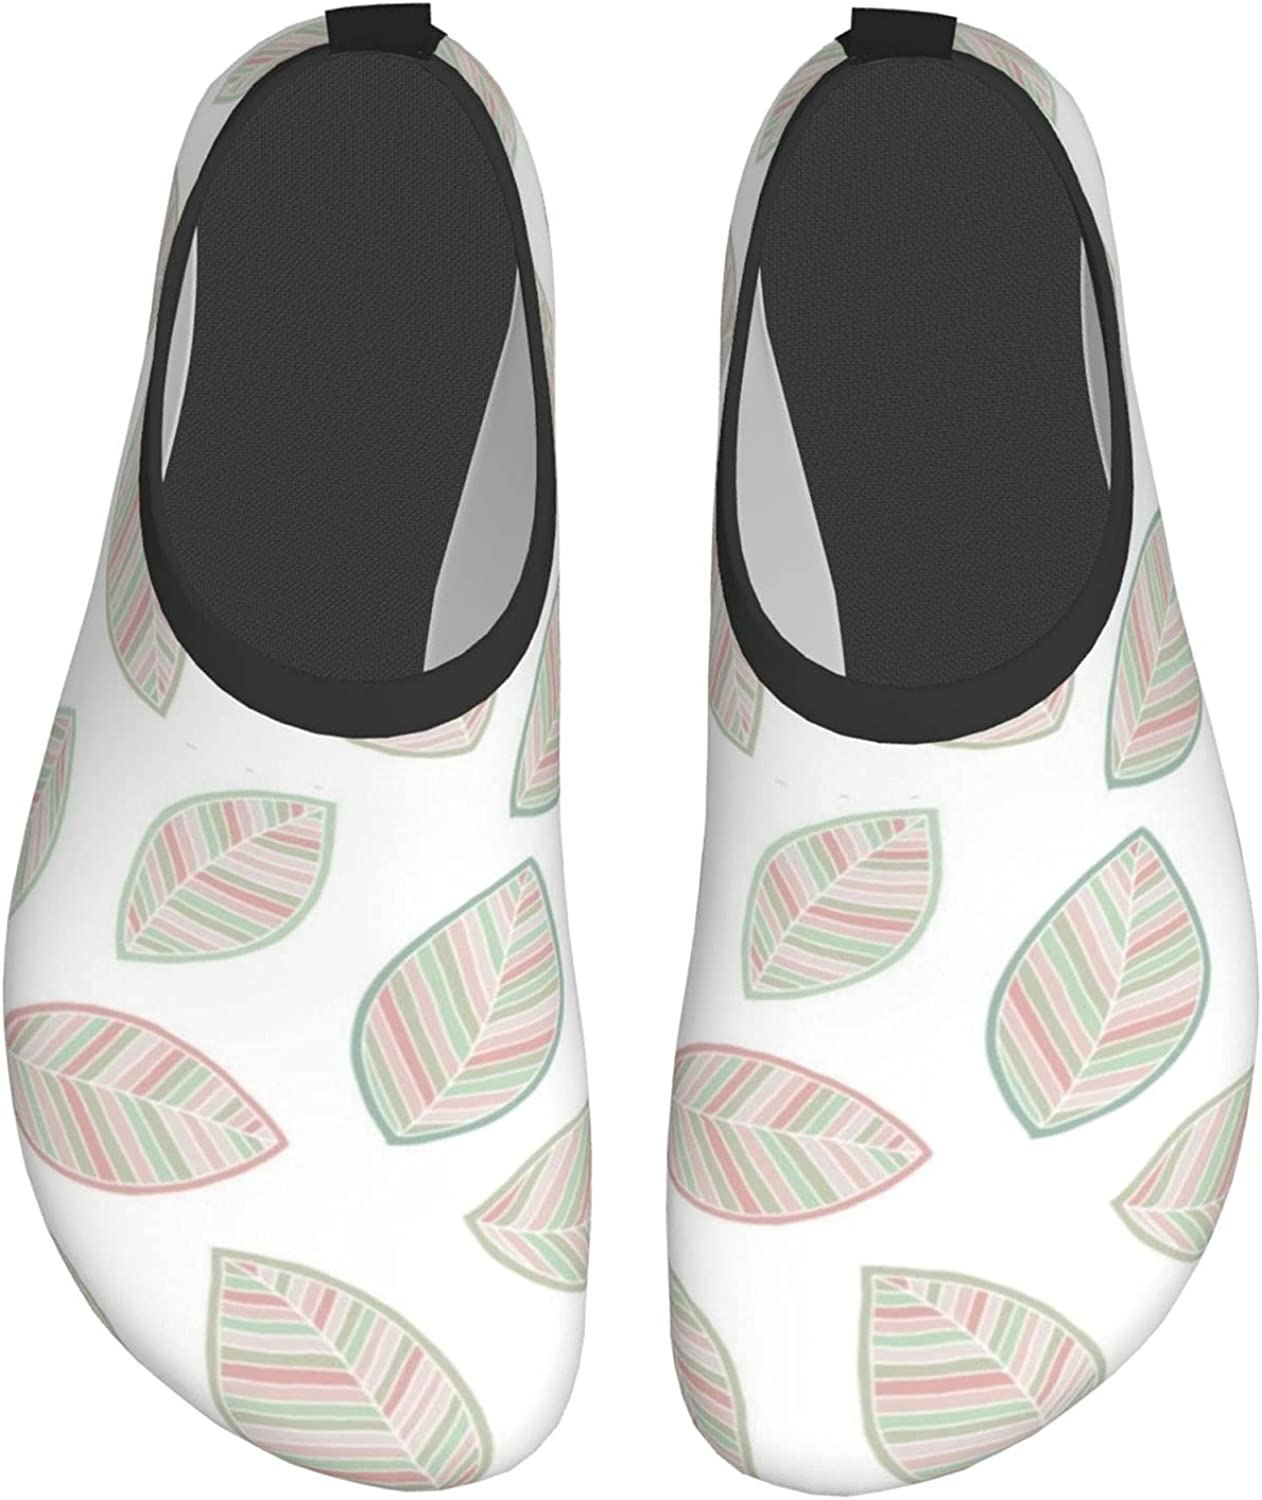 Hand Drawn Leaves Water Shoes for Womens Mens Barefoot Quick-Dry Aqua Socks for Beach Swim Surf Yoga Exercise New Translucent Color Soles